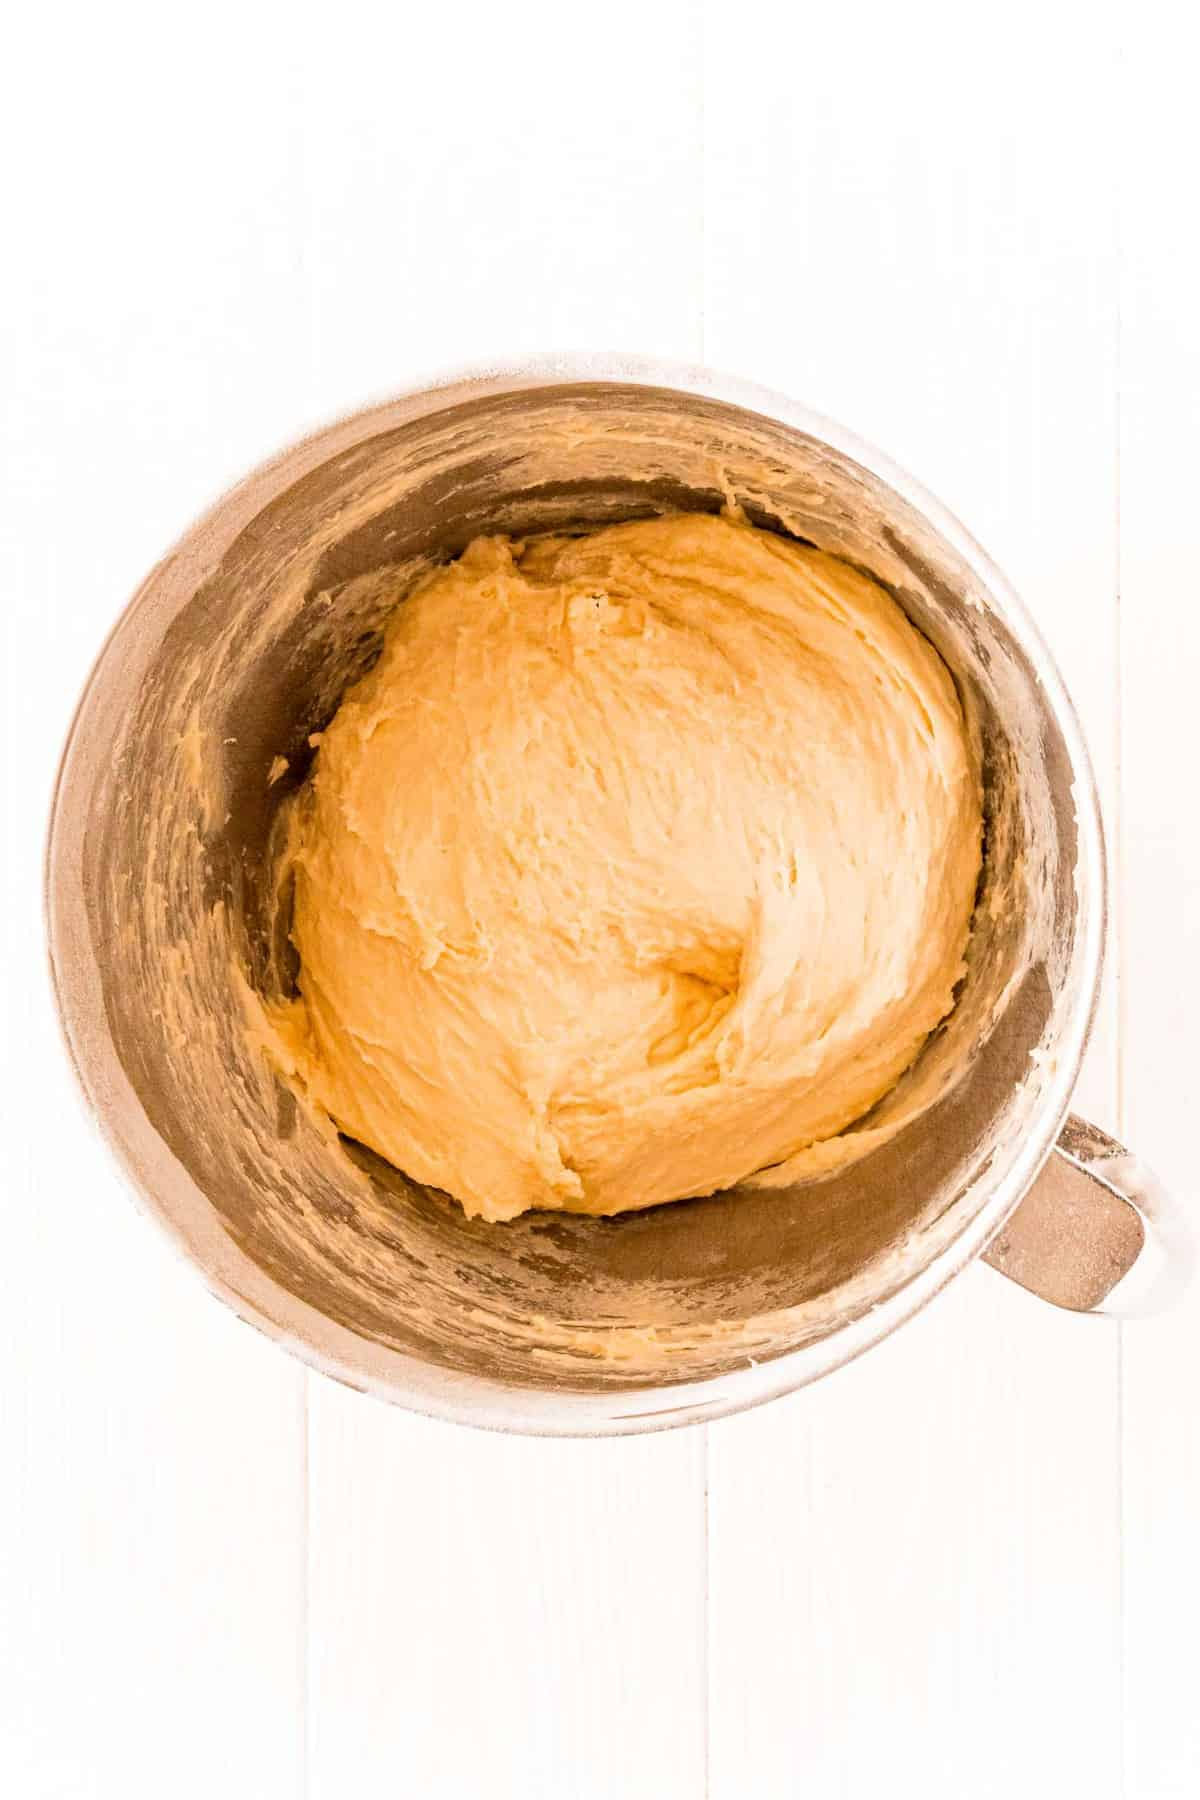 Bread dough in a metal mixing bowl on a white background.